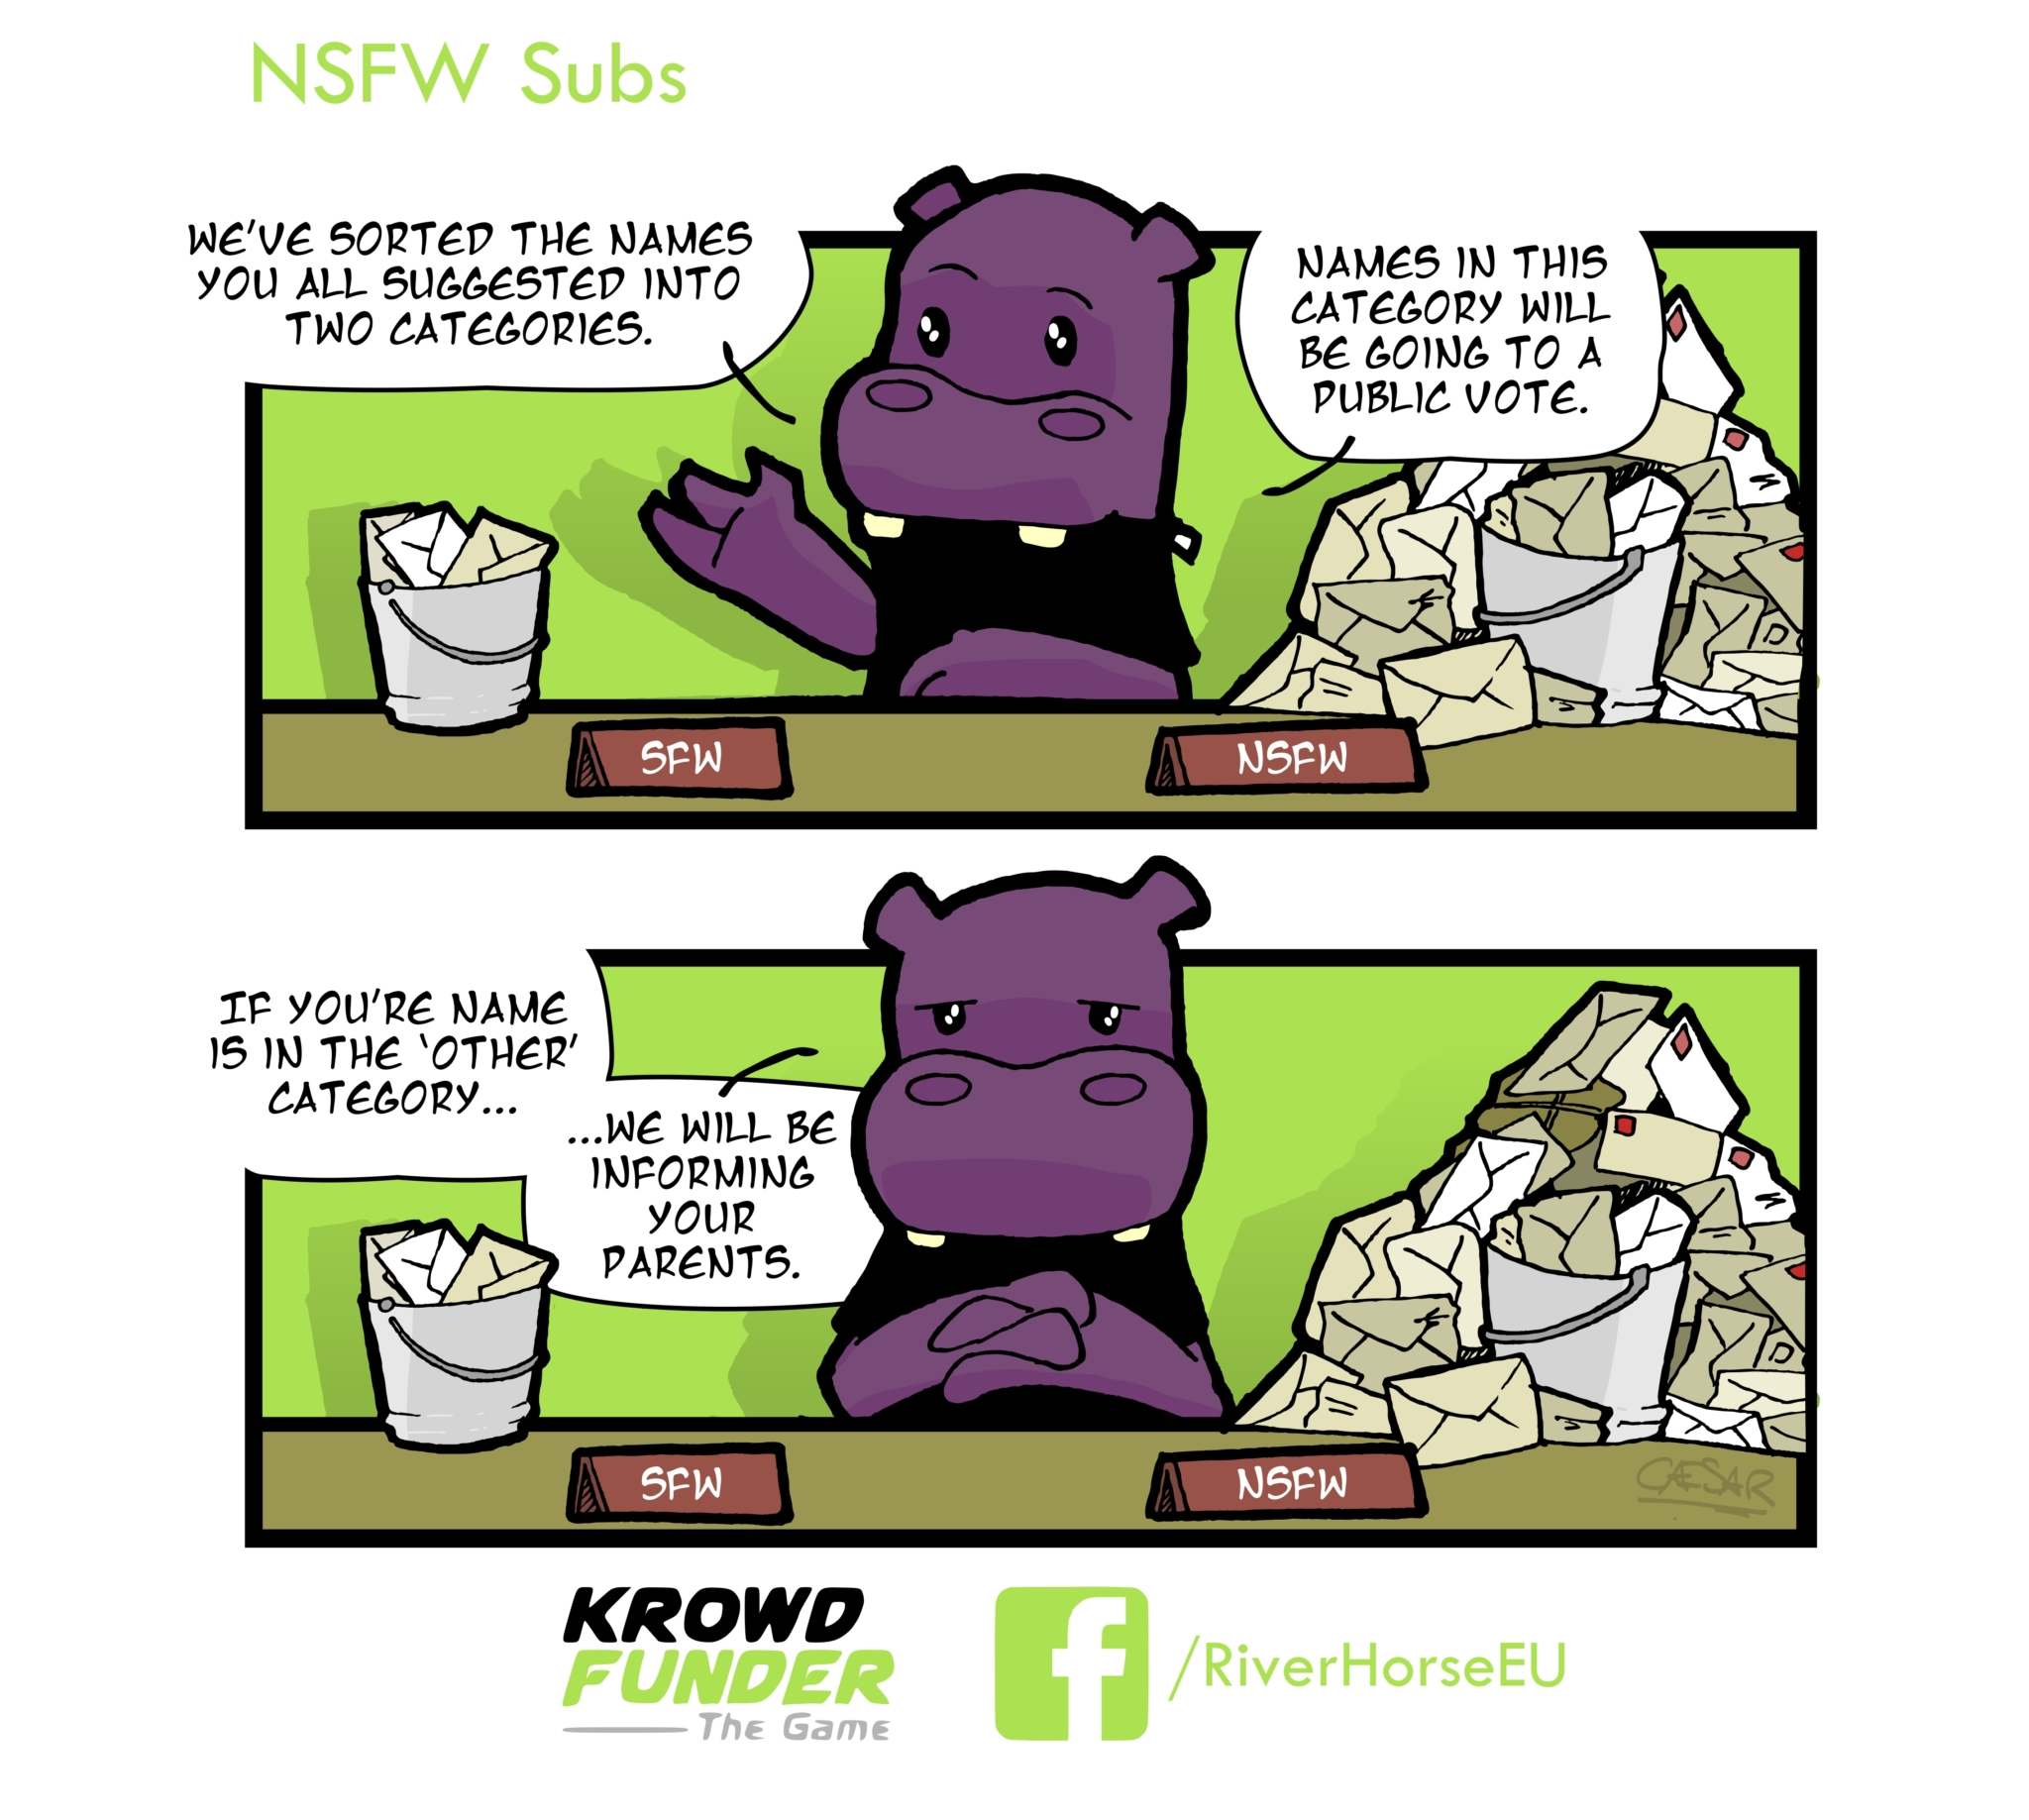 KROWDFUNDER: THE GAME COMIC #4 – NSFW